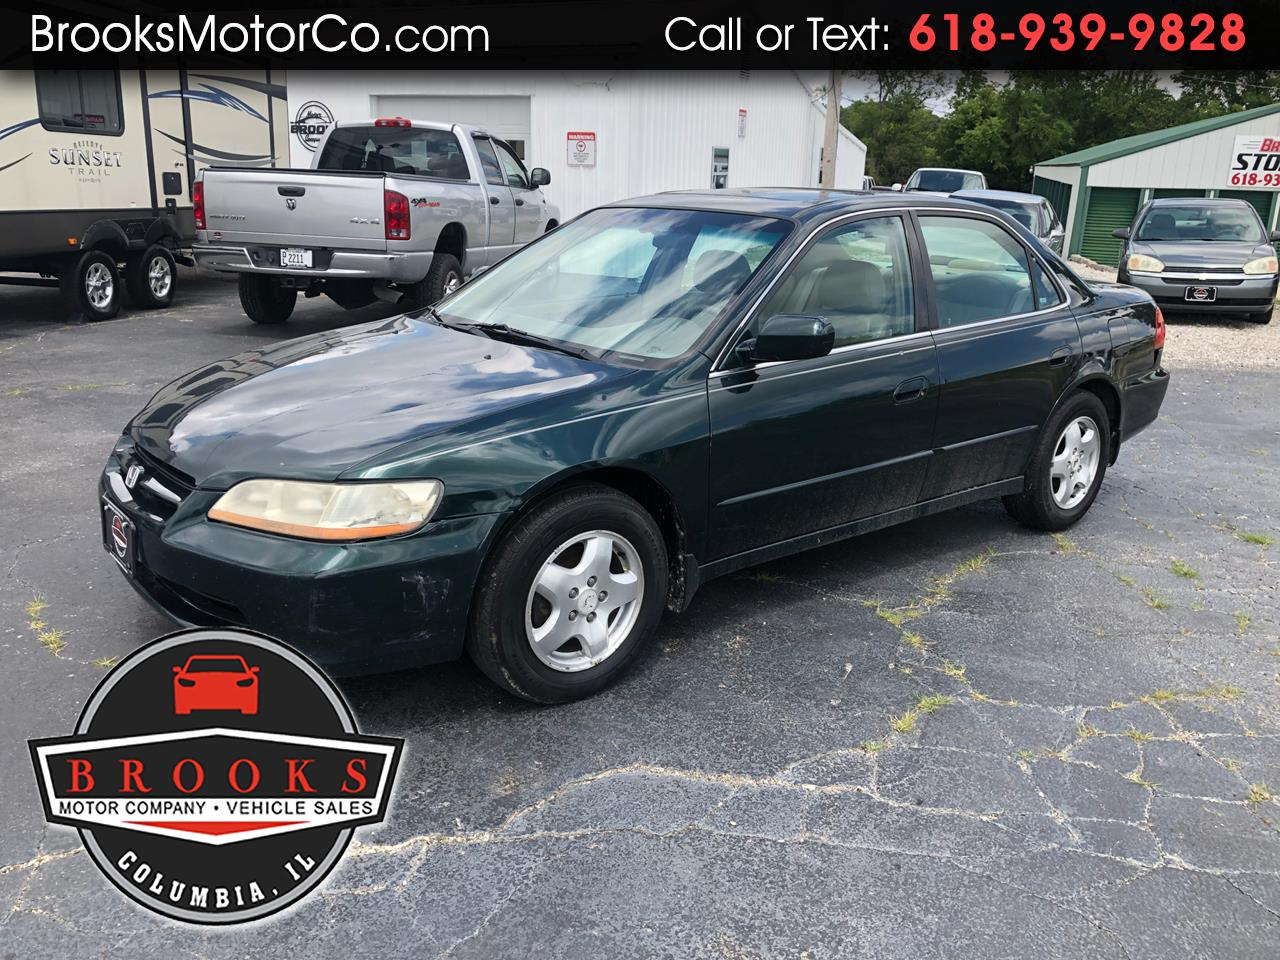 2000 Honda Accord Sdn 4dr Sdn EX Auto V6 W/Leather